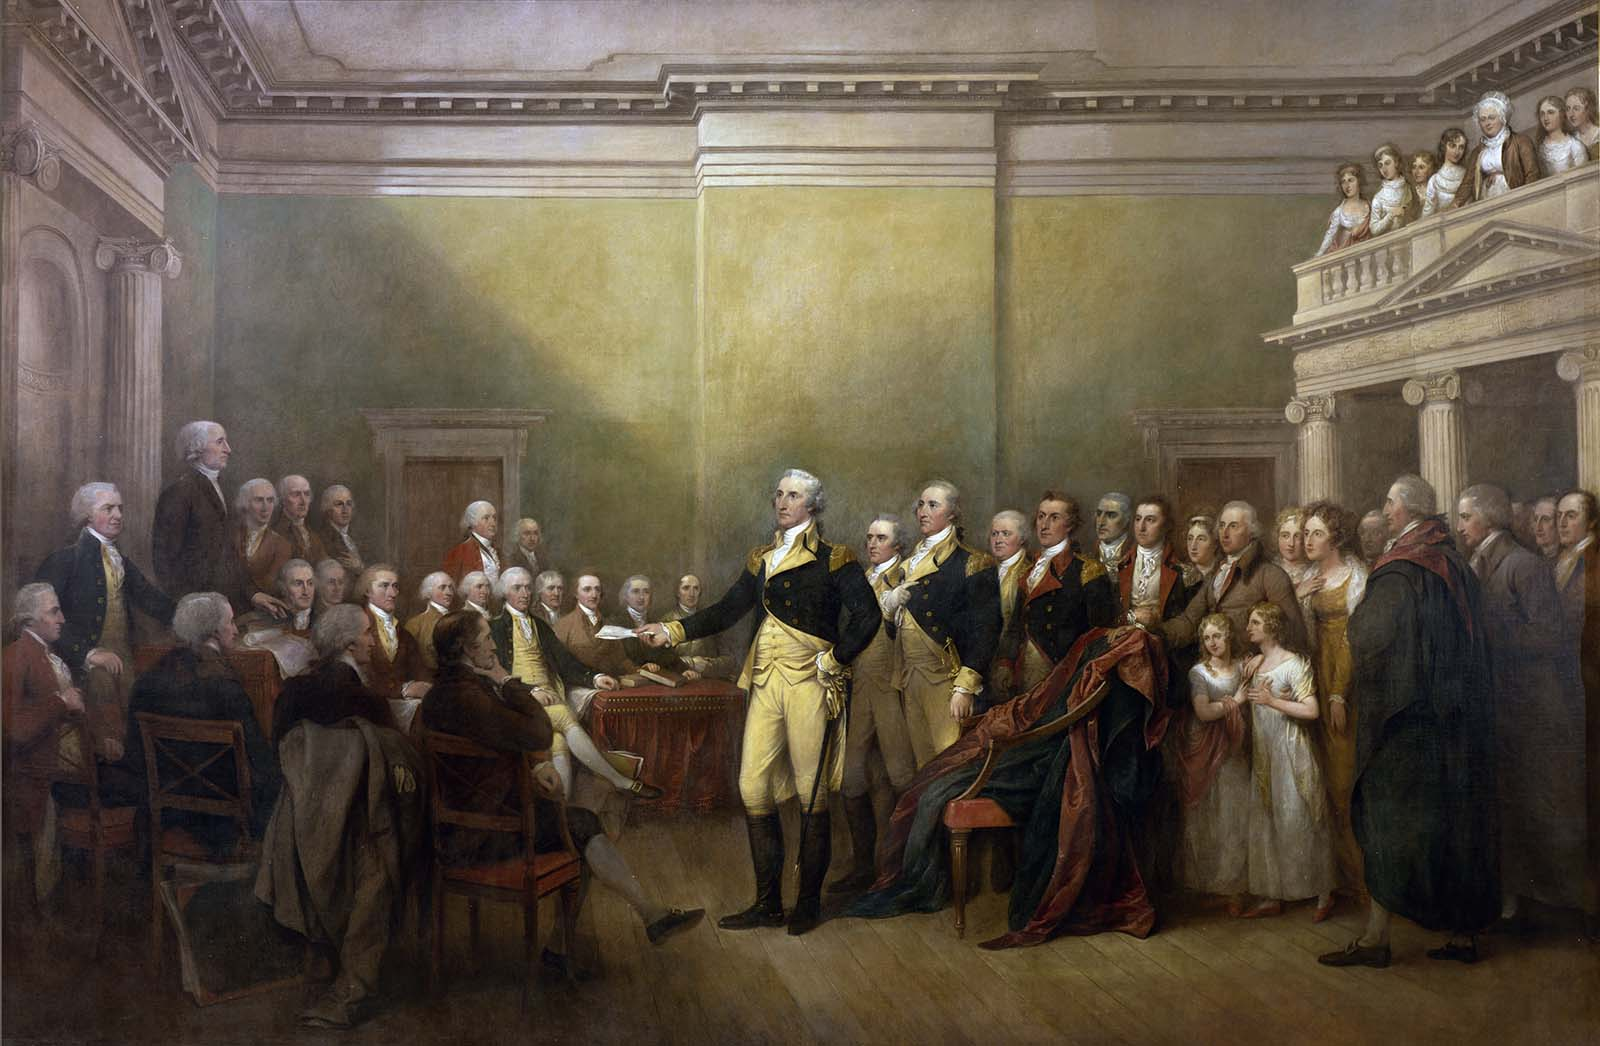 the american revolution the american yawp another john trumbull piece commissioned for the capitol in 1817 this painting depicts what would